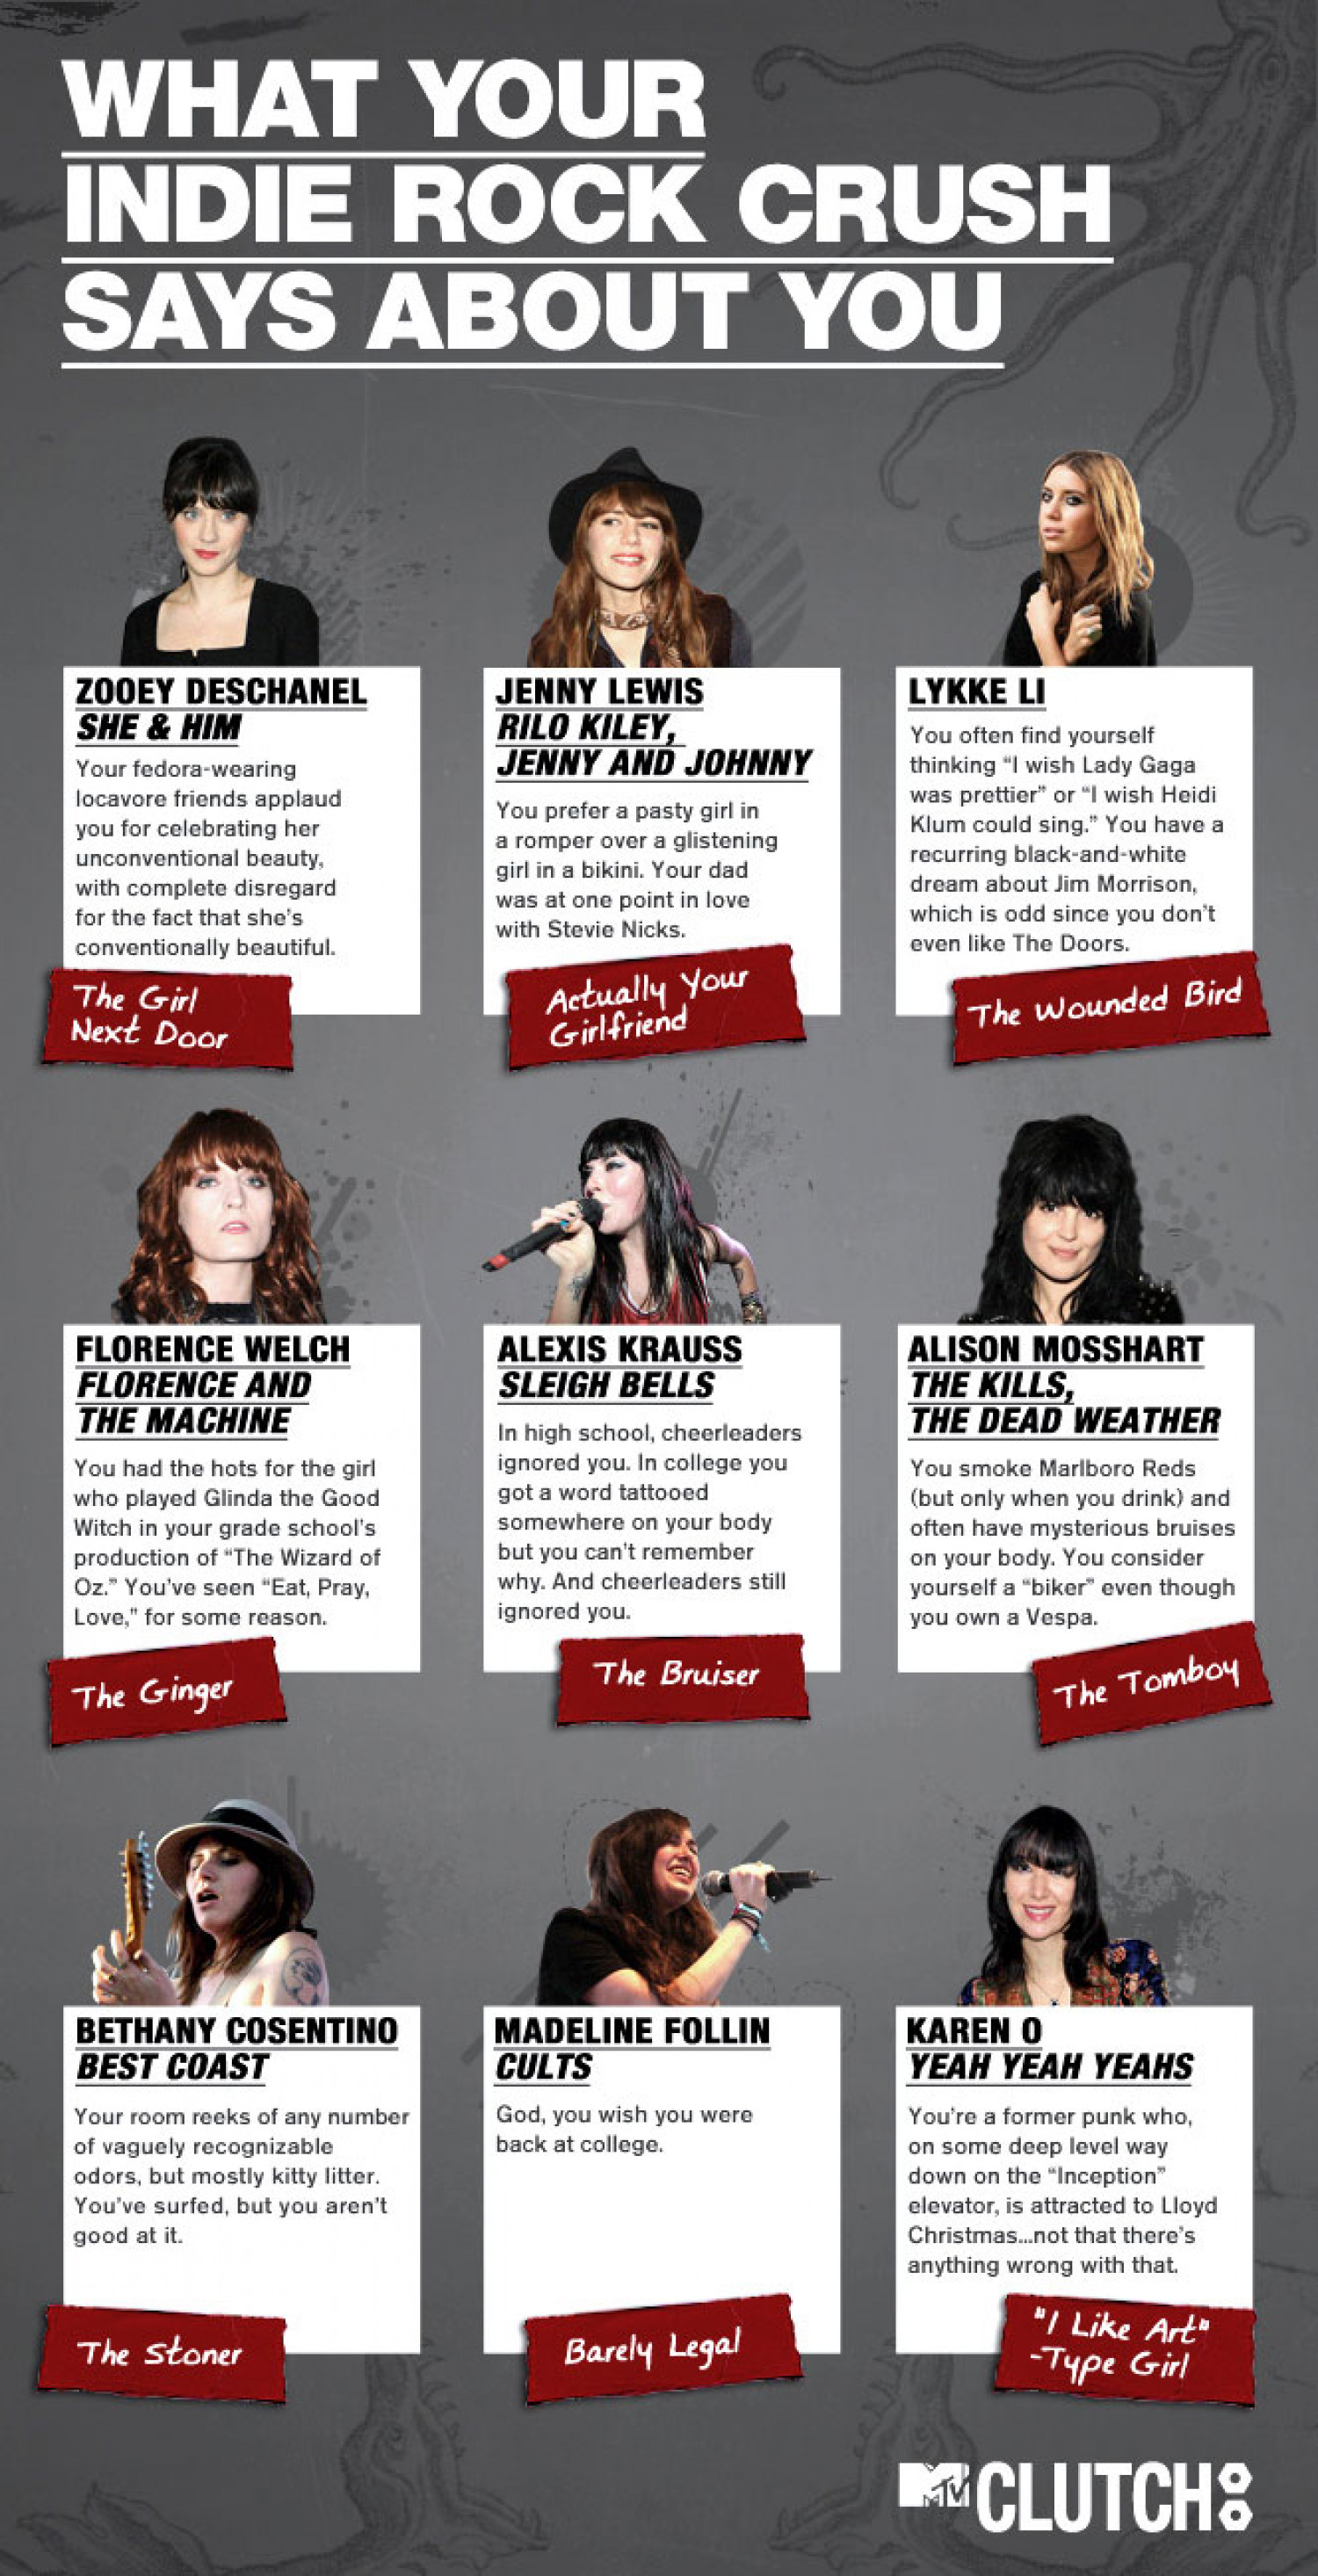 What Your Indie Rock Crush Says About You Infographic